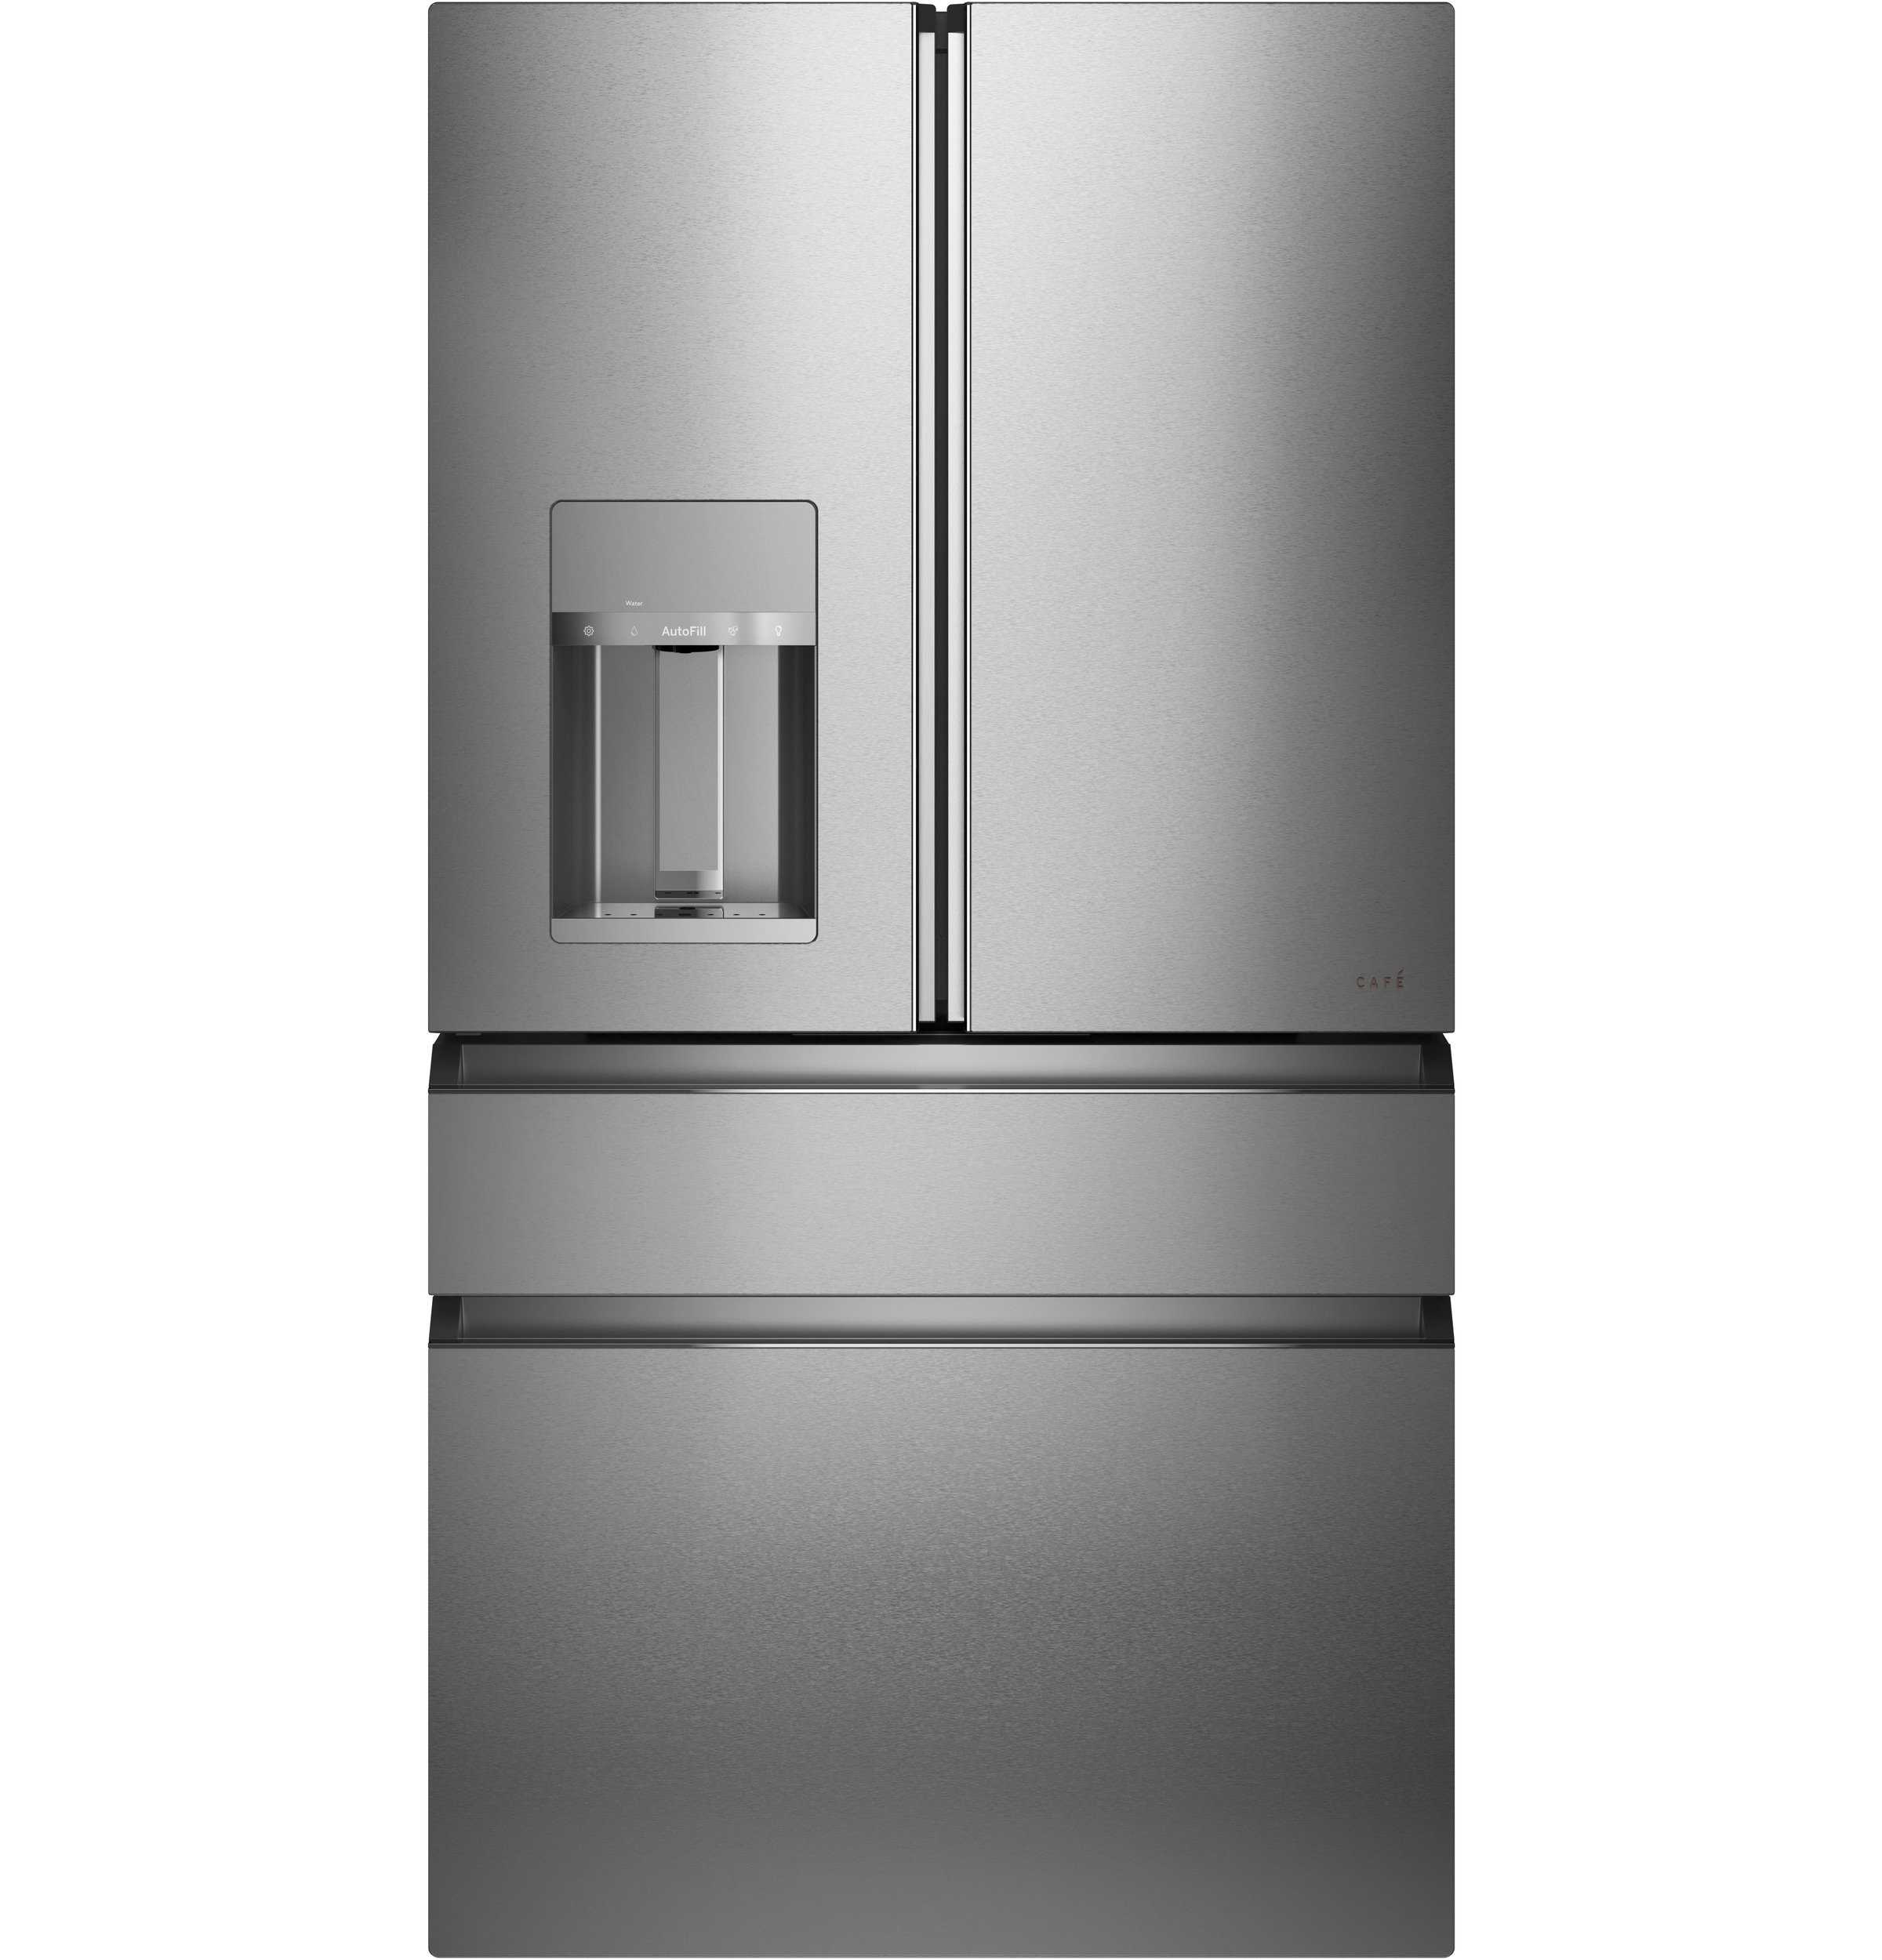 Cafe Café™ ENERGY STAR® 27.8 Cu. Ft. Smart 4-Door French-Door Refrigerator in Platinum Glass